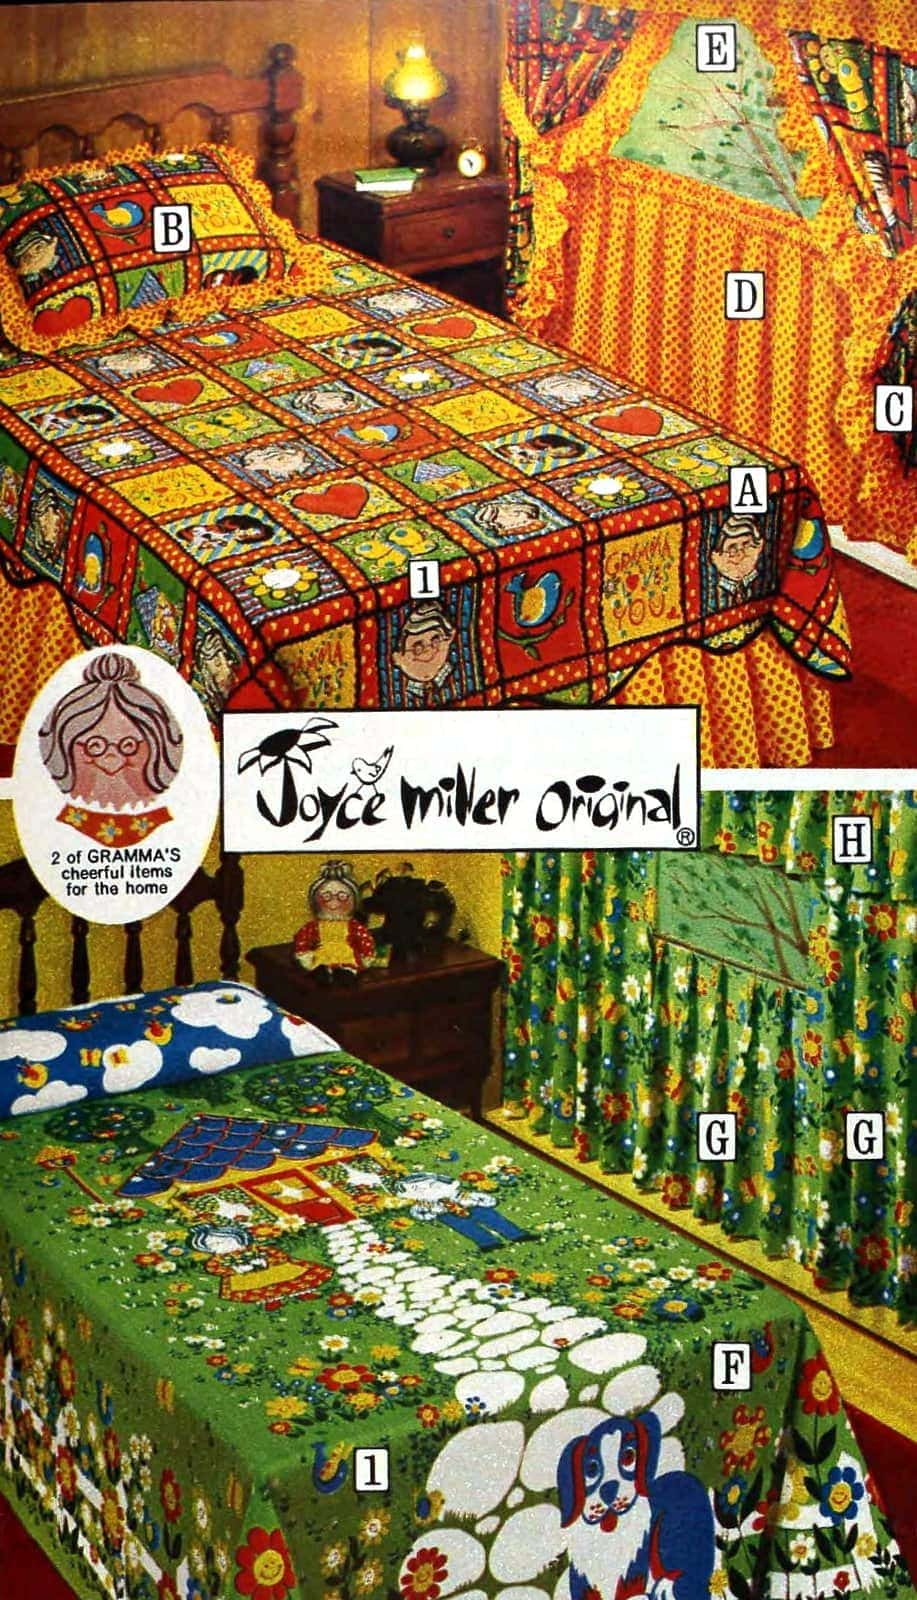 Retro kids' patterned sheets and bedding from the seventies (2)